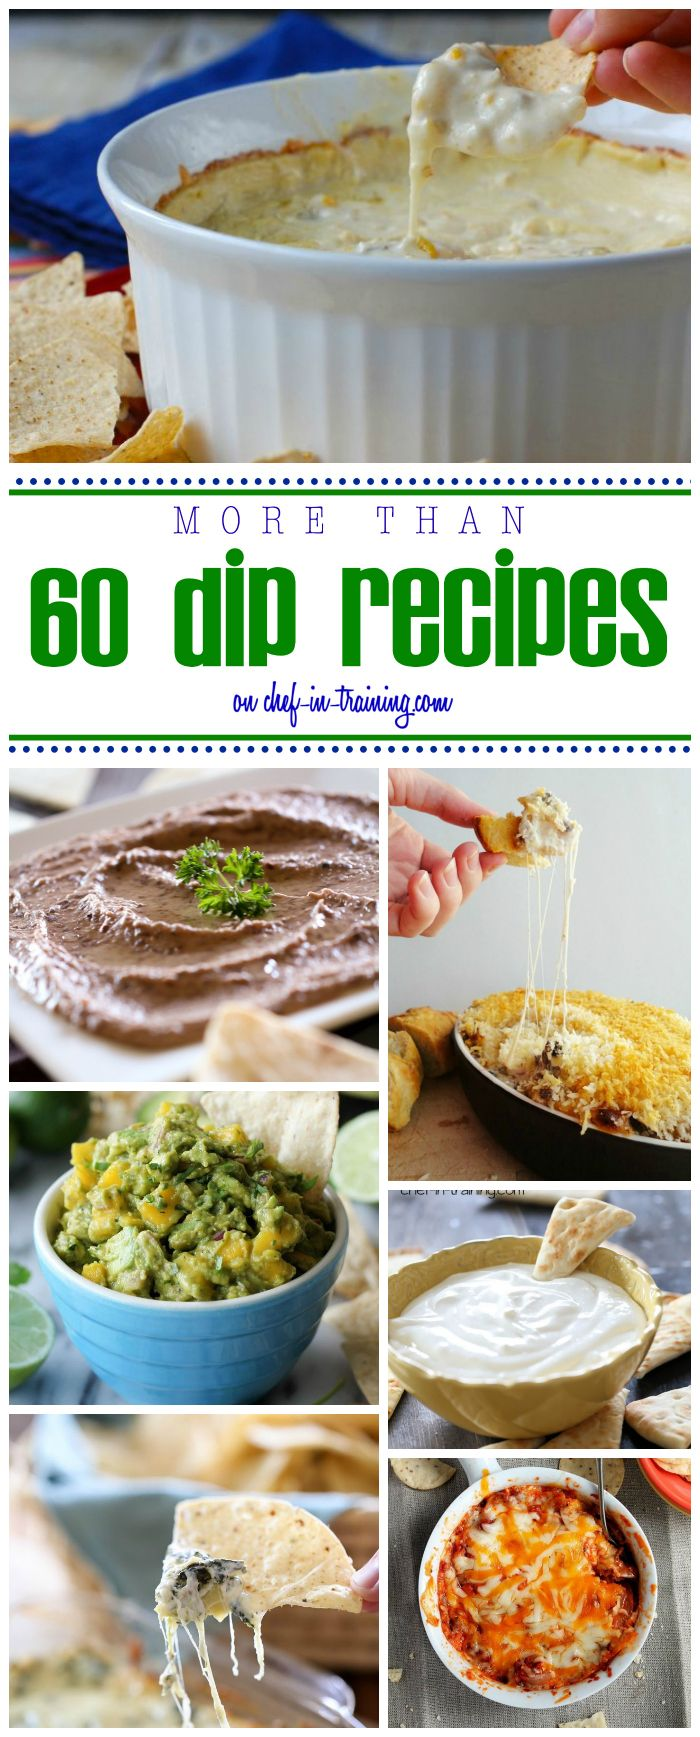 60 Dip Recipes at chef-in-training.com …This round up  is perfect for your next party or get together!